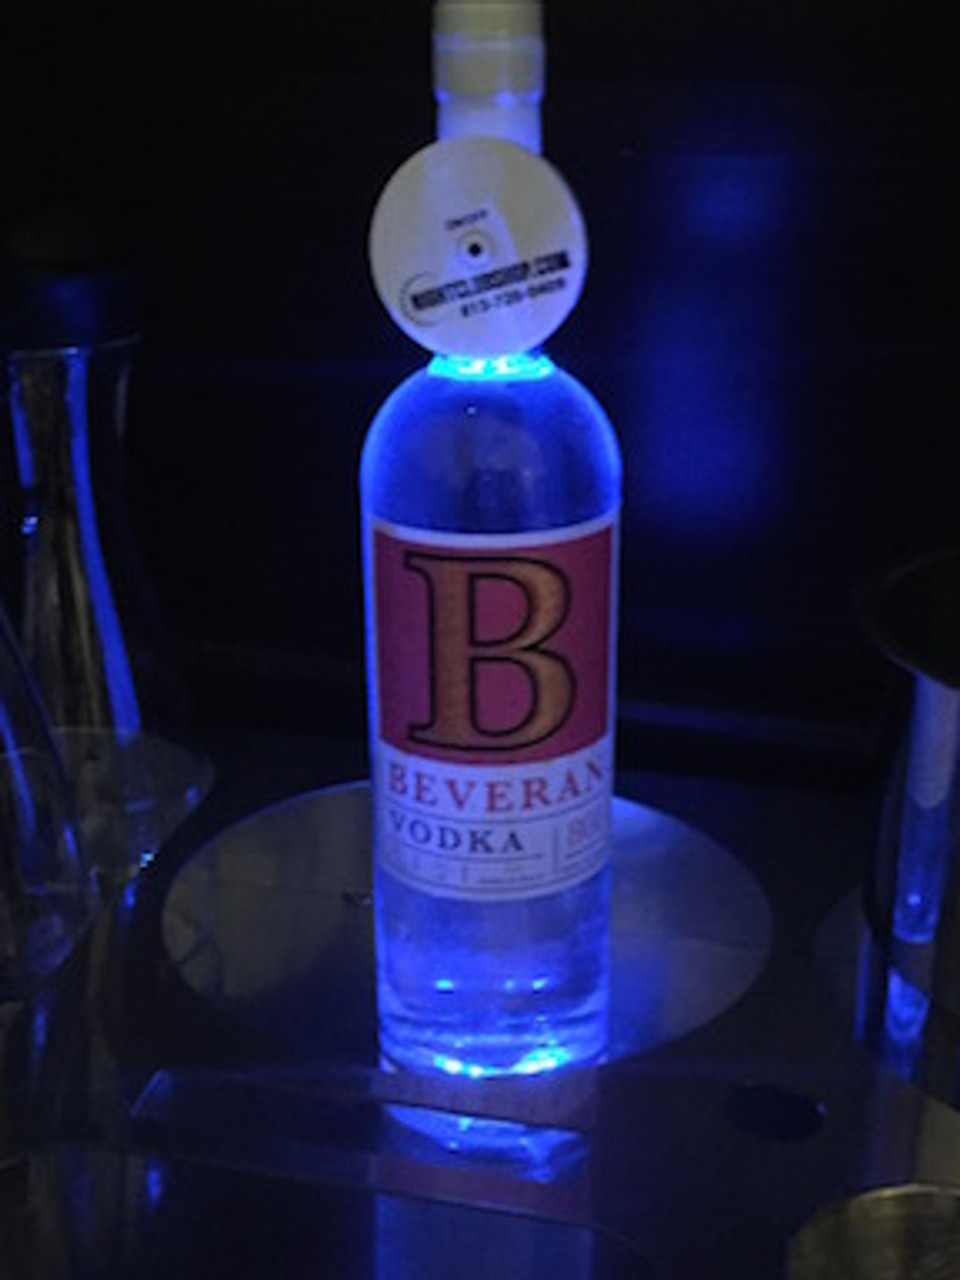 Beveran-Vodka-Light-up-illuminated-illuminator-Coaster-pad-Glorifier-mini-bottle-Glow-LEDGlow-Liquor-light pad-Nightclubshop